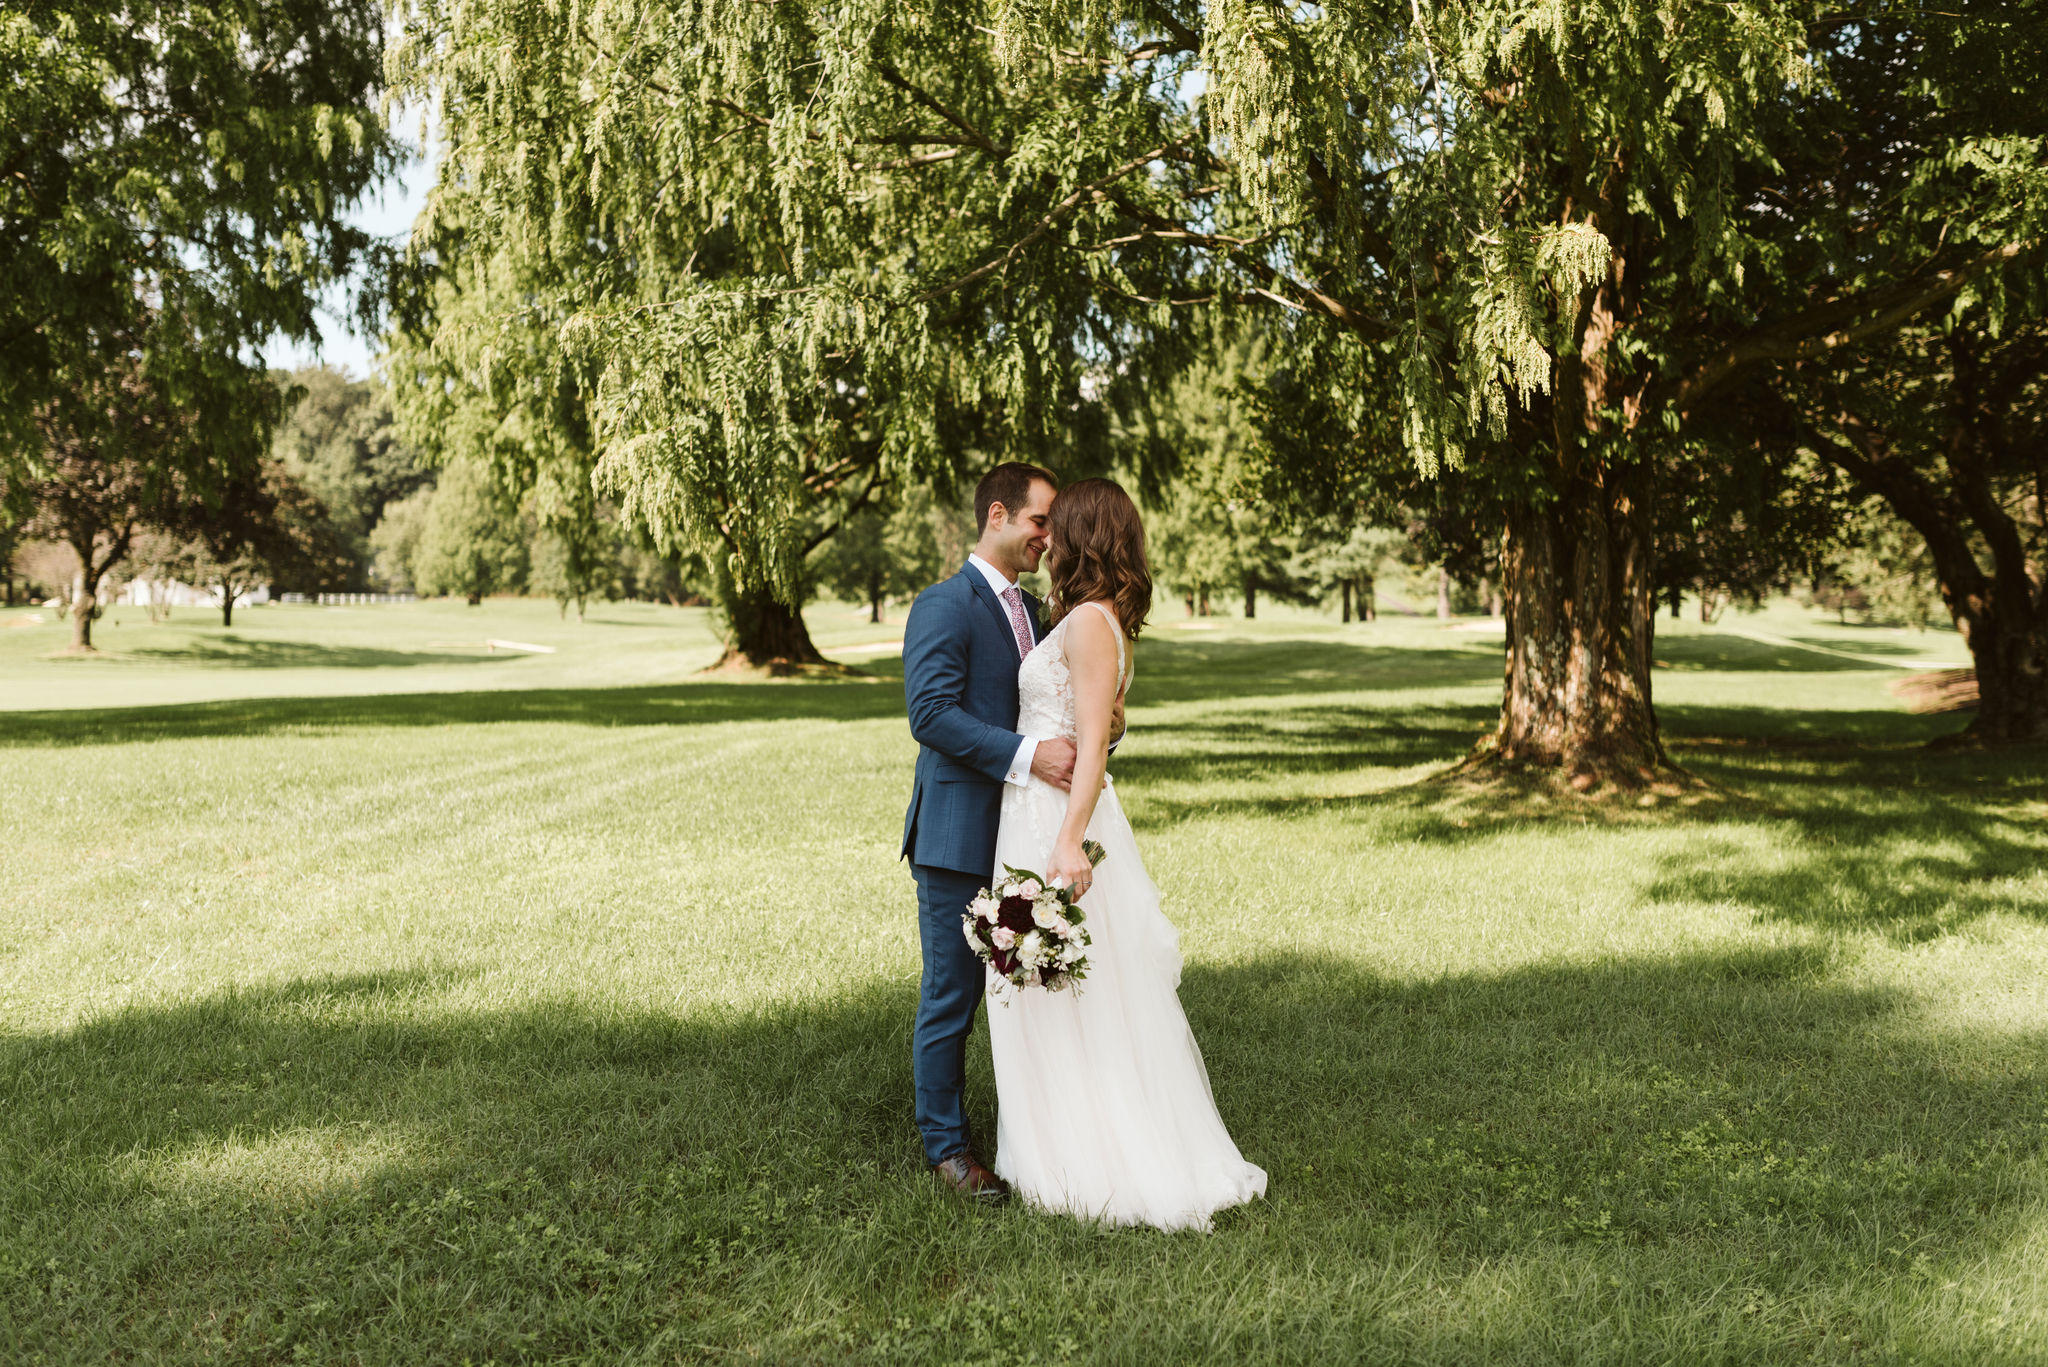 Phoenix Maryland, Baltimore Wedding Photographer, Eagle's Nest Country Club, Classic, Romantic, Spring, Bride and Groom Kissing Under the Trees, Dundalk Florist, BHLDN Dress, Blue Generation Tux Suit